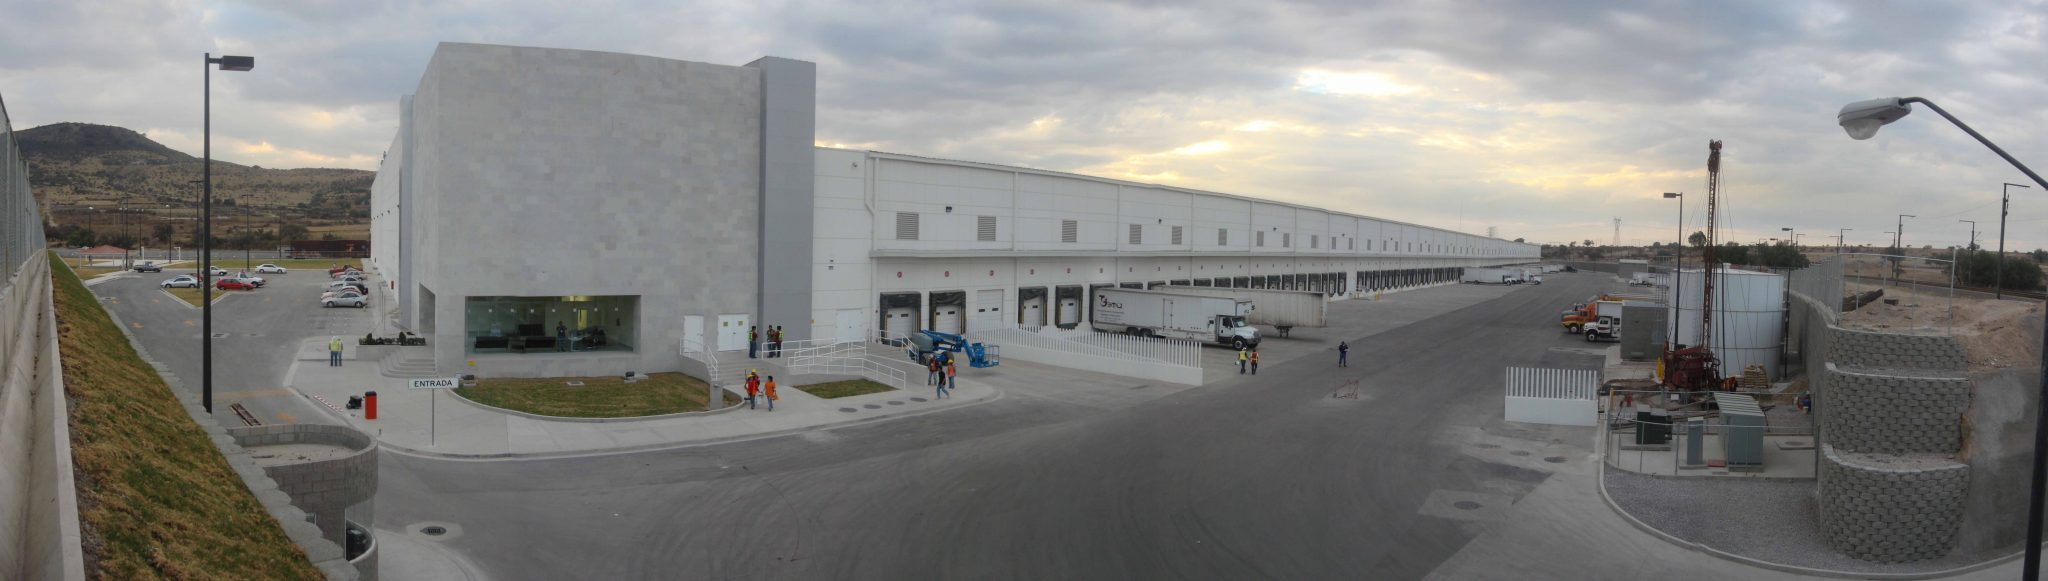 Panoramic shot of MABE distribution center in Huehuetoca, Mexico